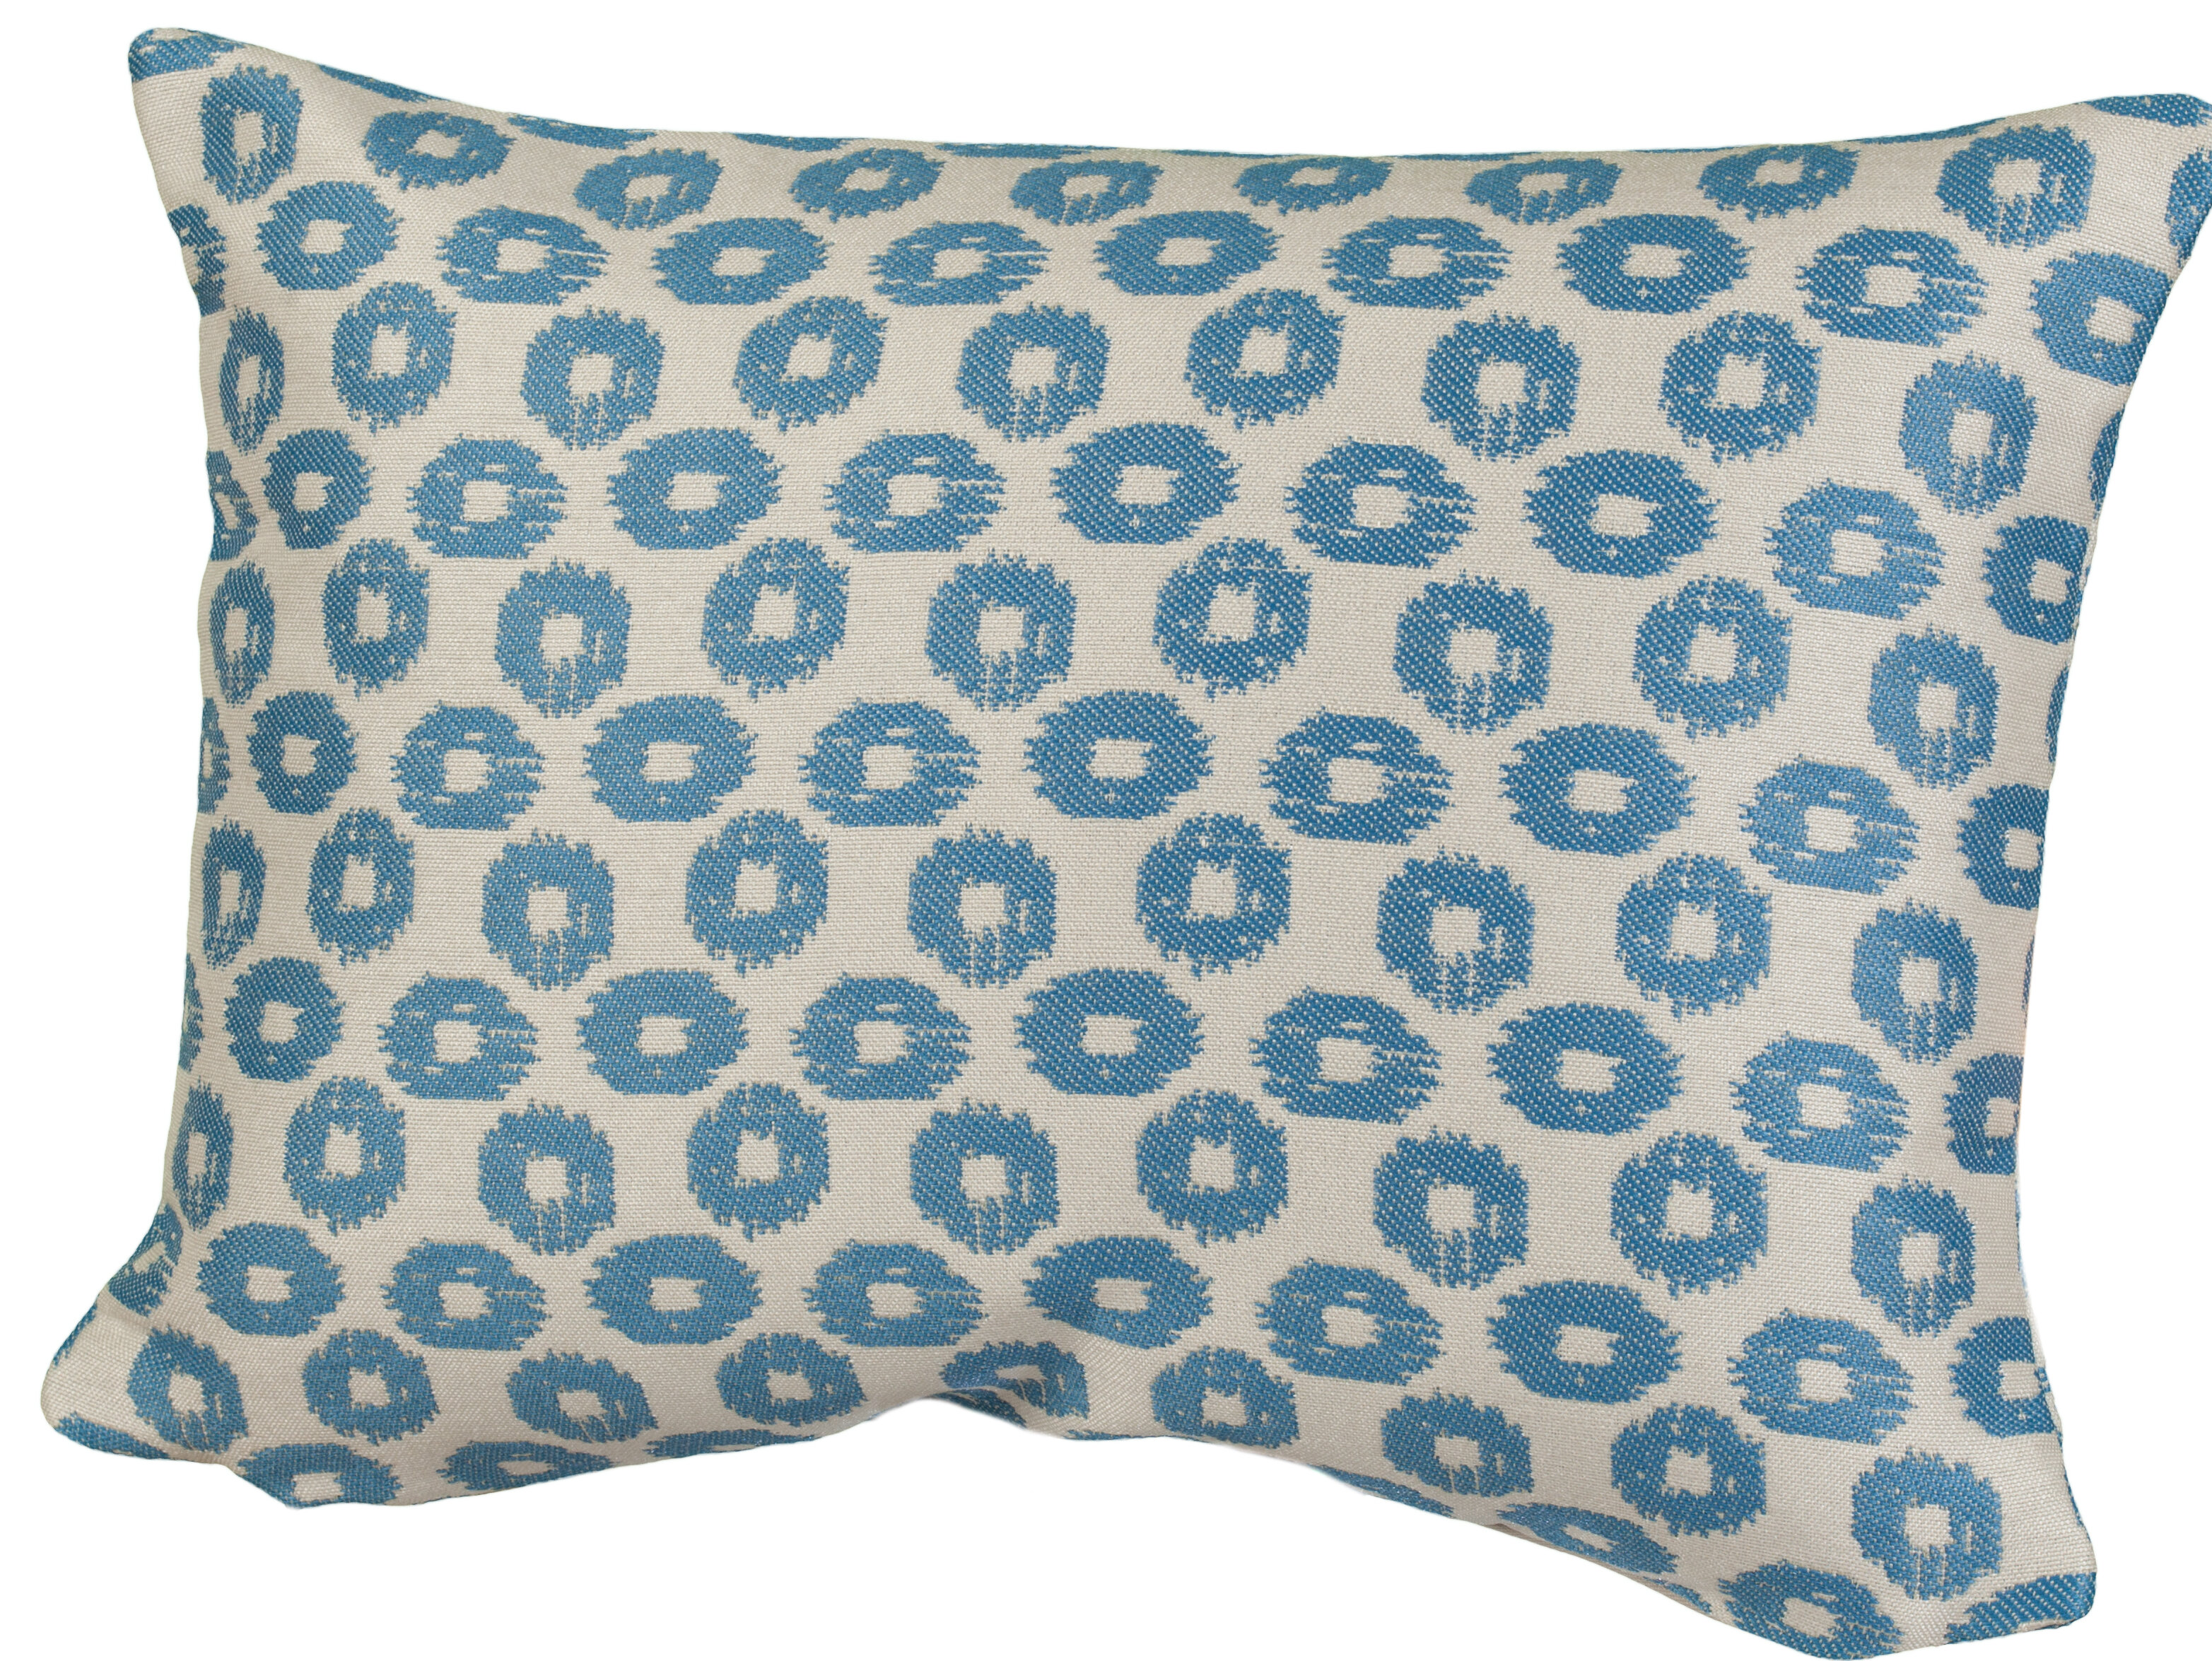 Highland Dunes Crass Stepping Stones Indoor Outdoor Lumbar Pillow Wayfair